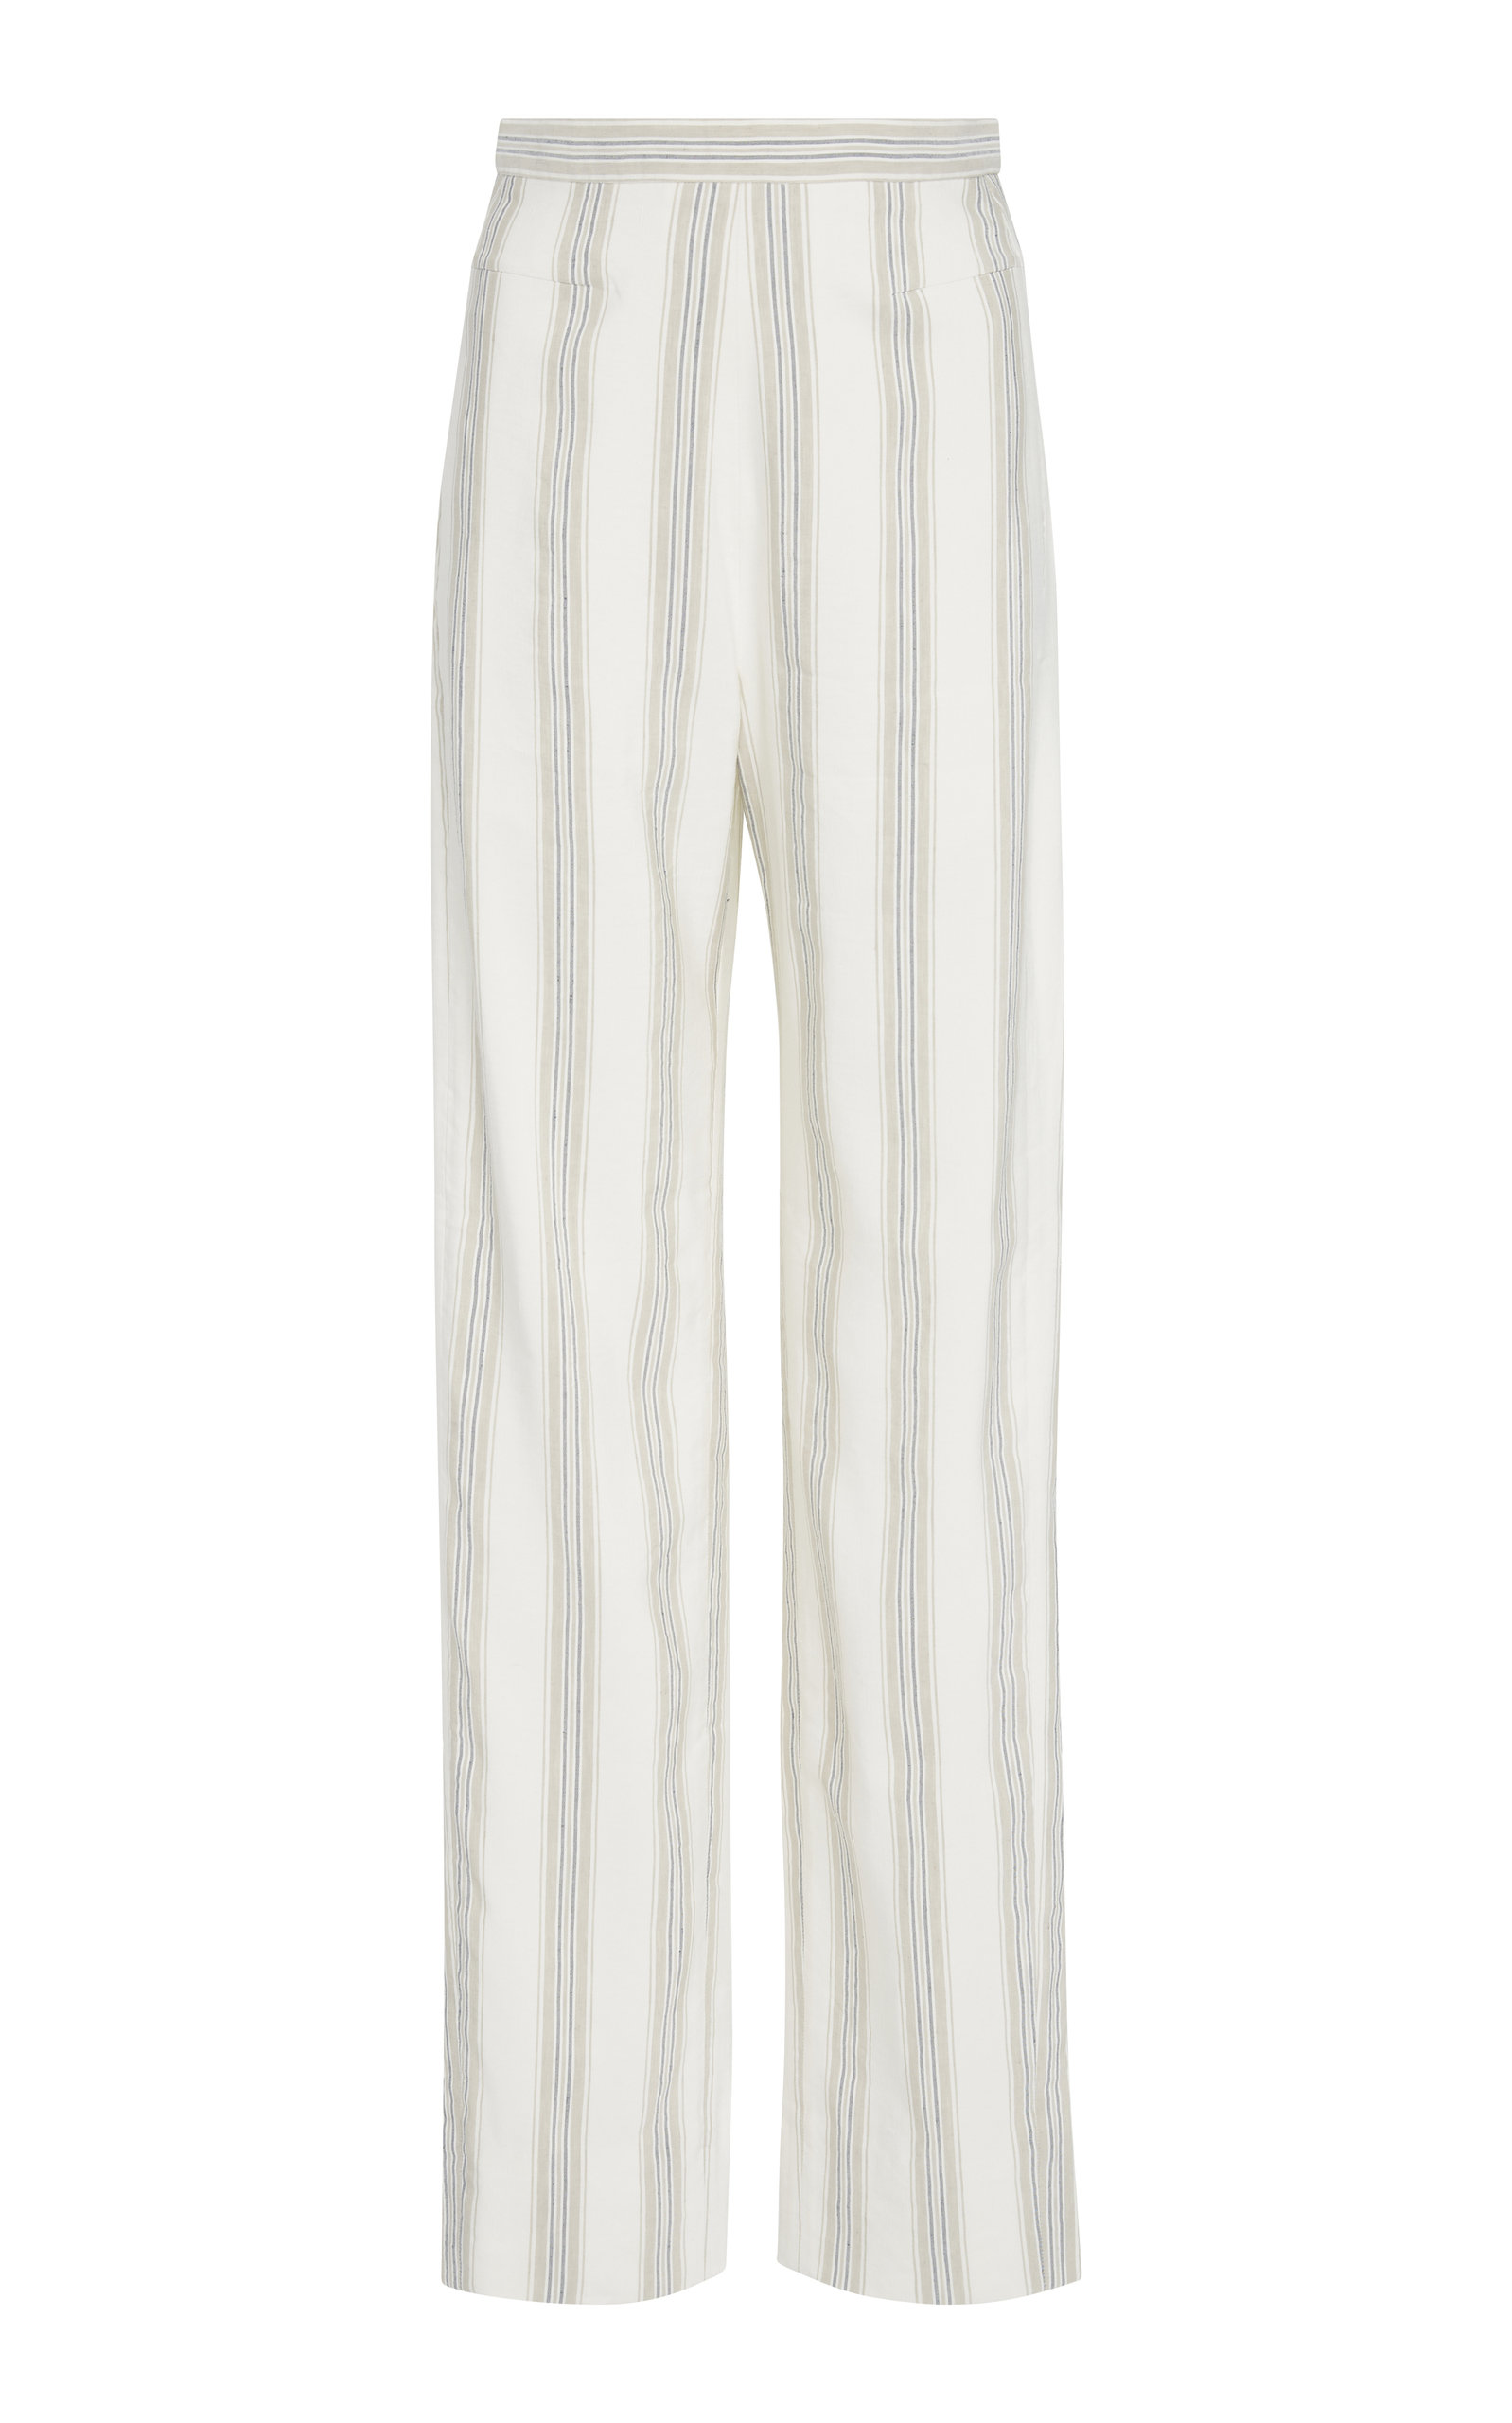 NOON BY NOOR RICKIE SILK BLEND STRIPED PANT